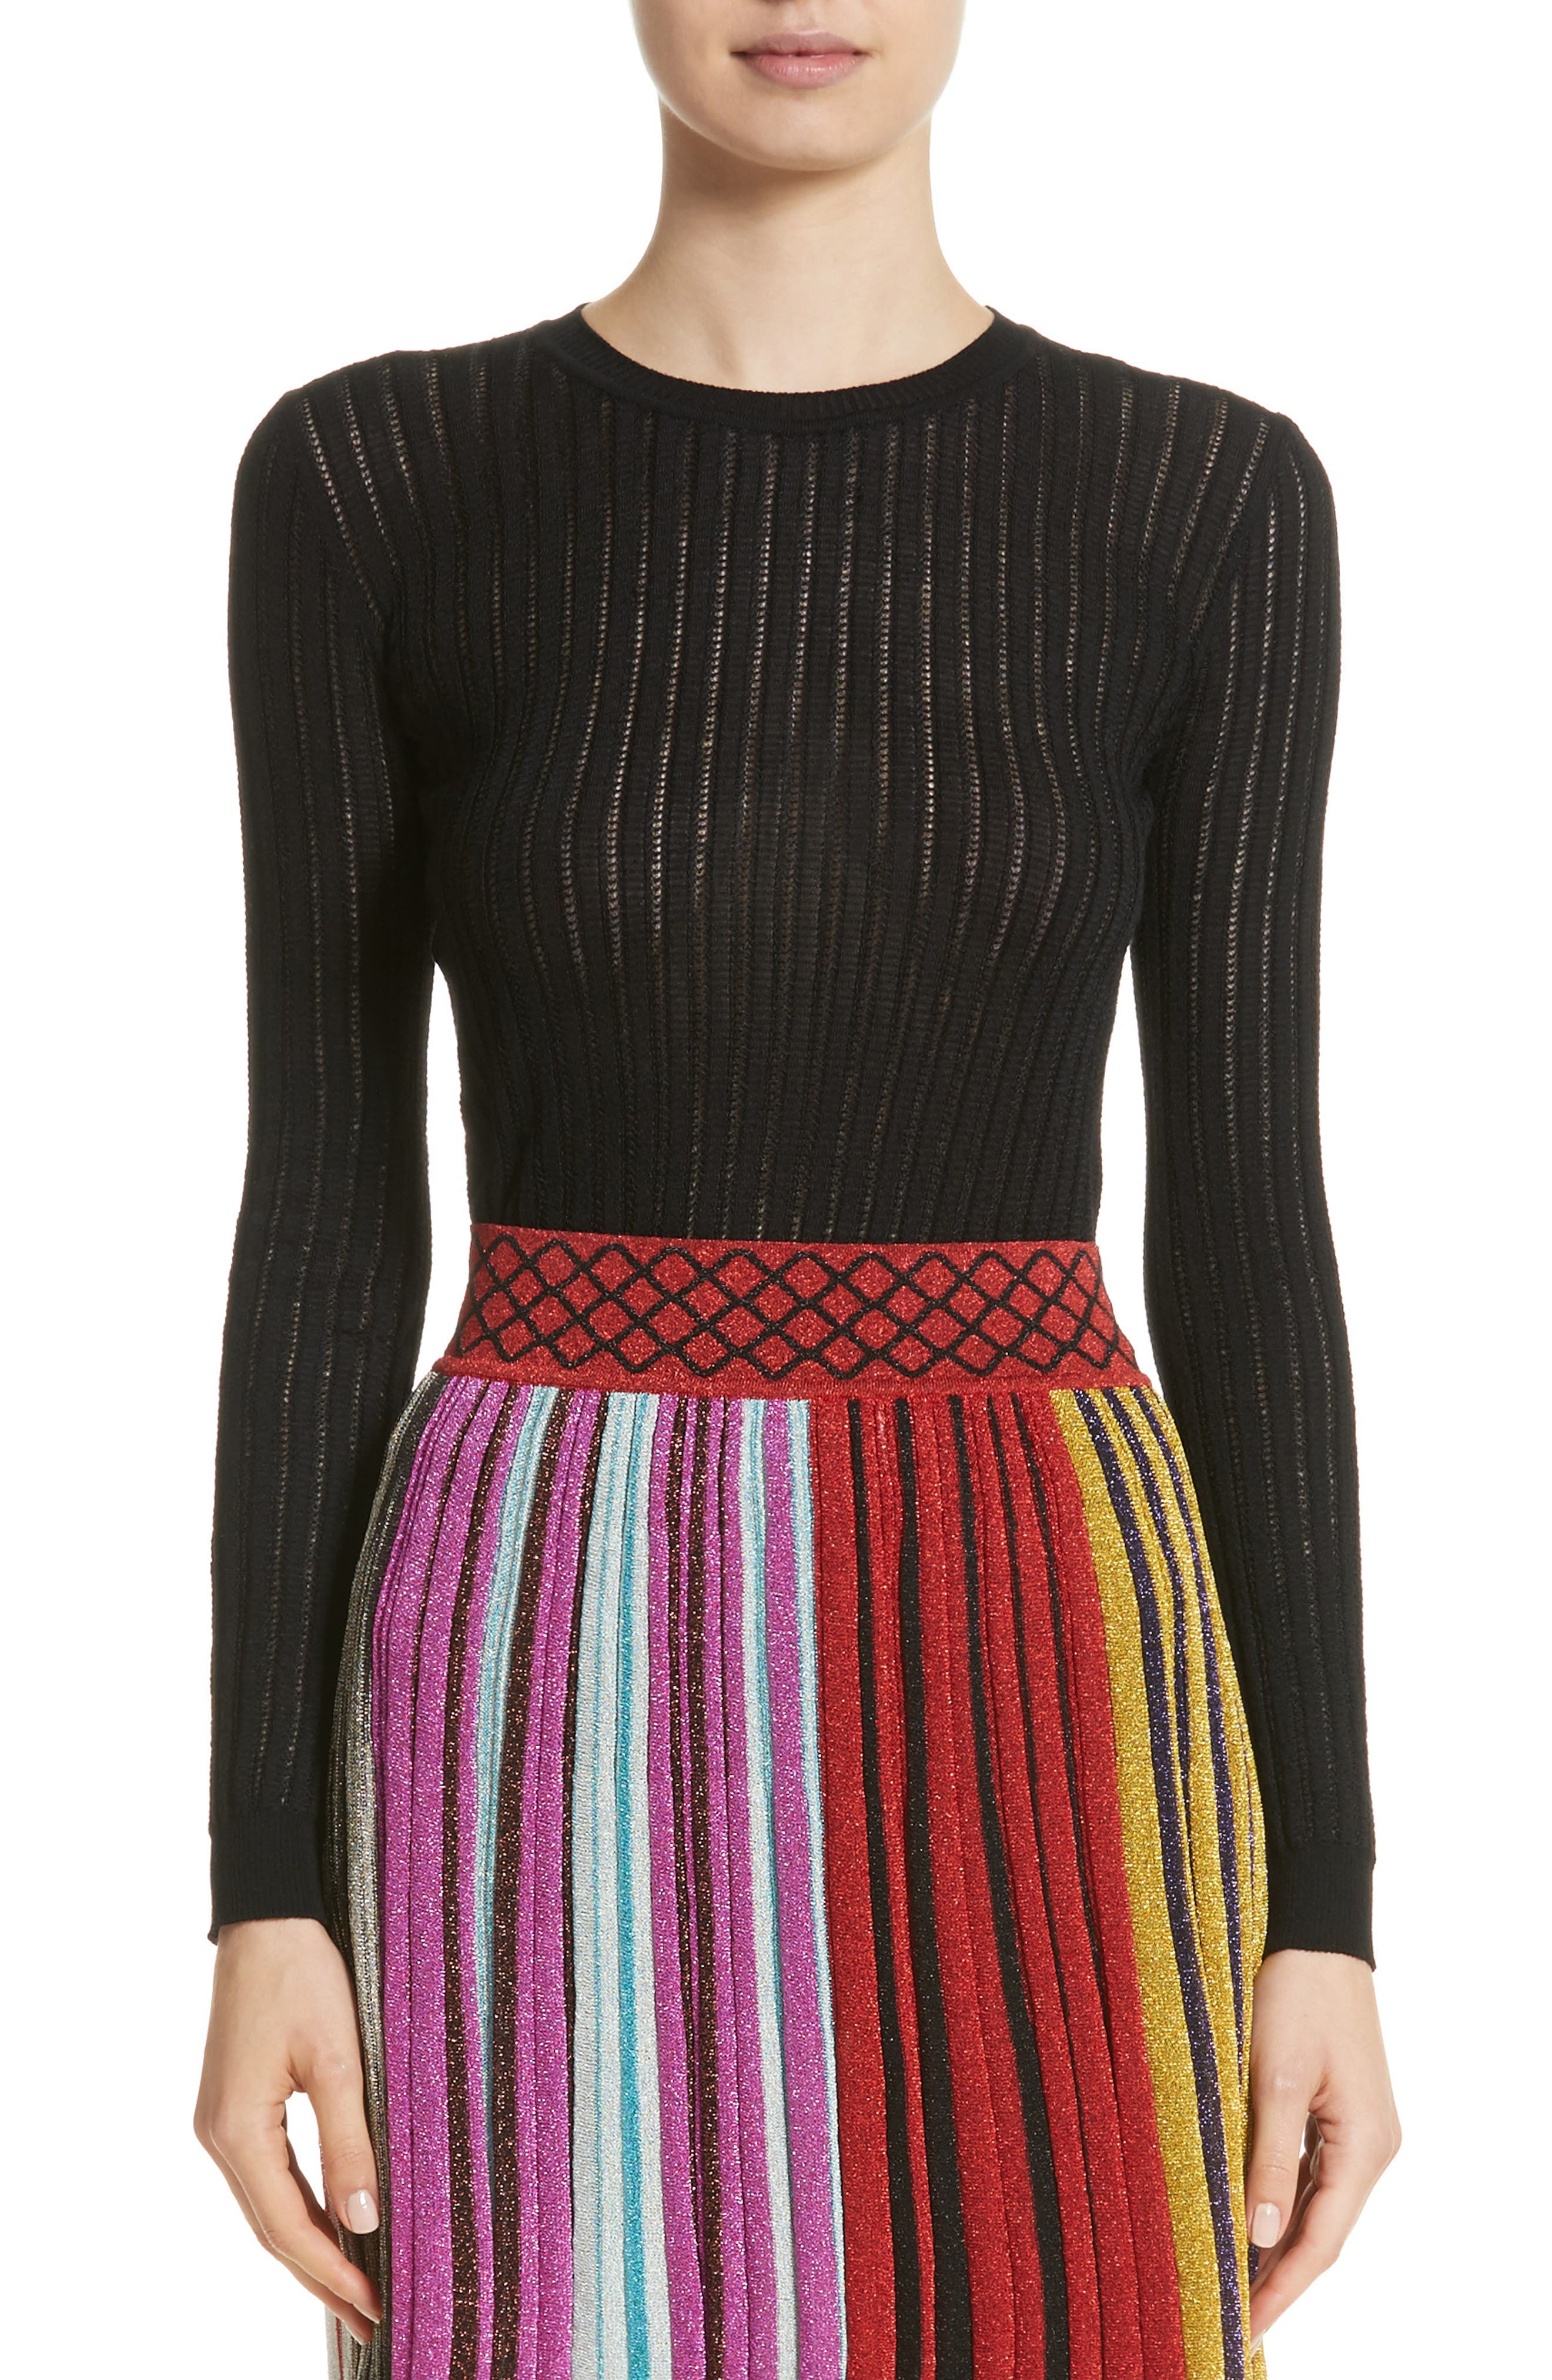 Knit Wool Blend Sweater,                             Main thumbnail 1, color,                             001